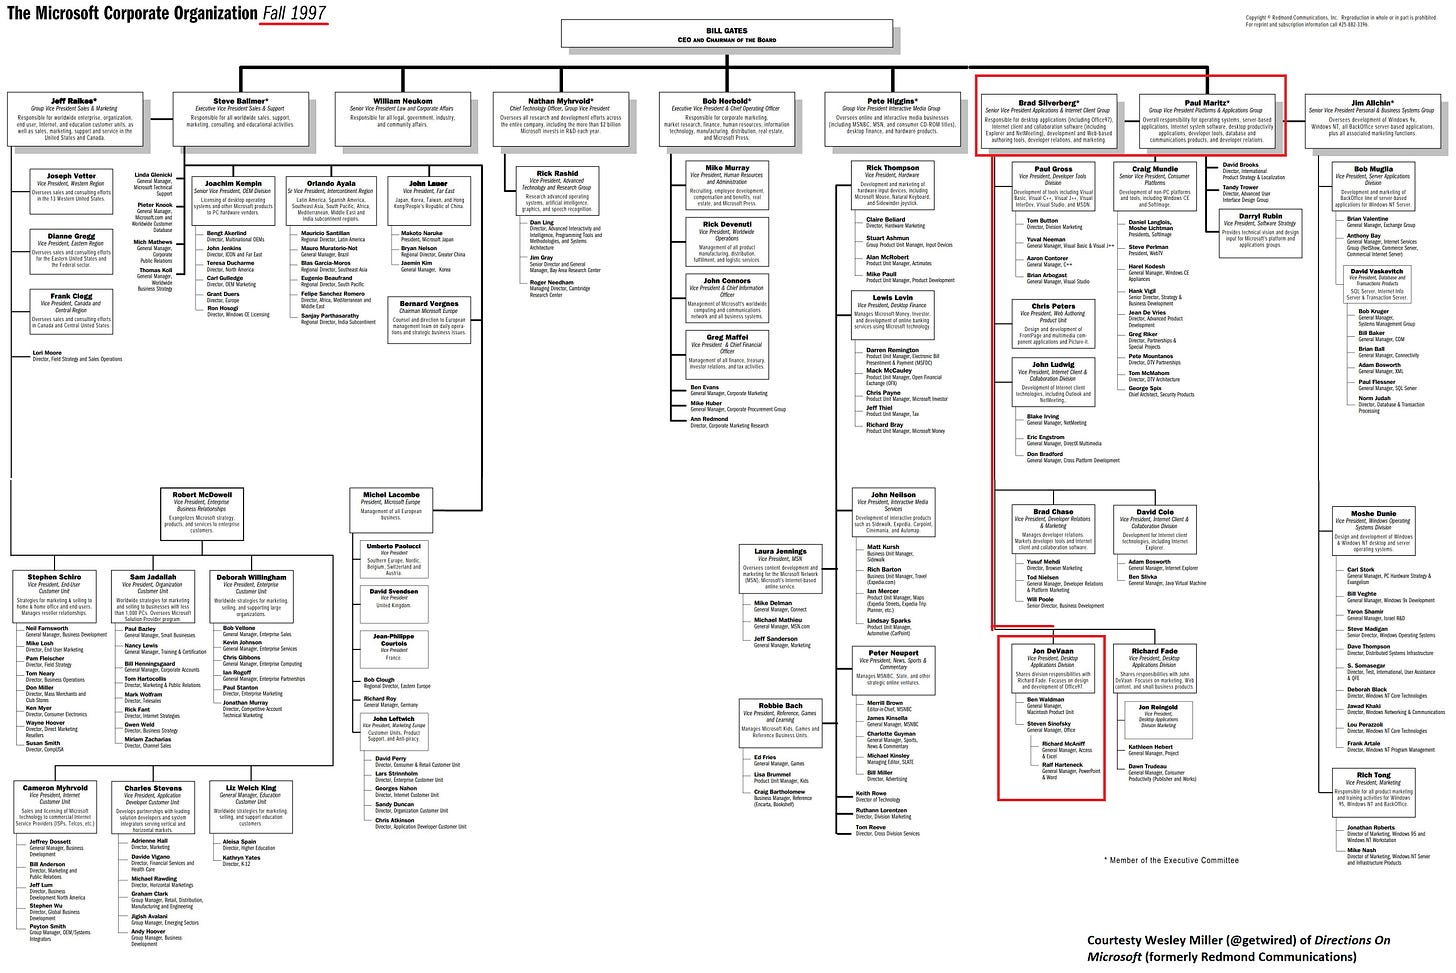 Complete executive org chart for Microsoft Fall 1987 -- a very complicated diagram